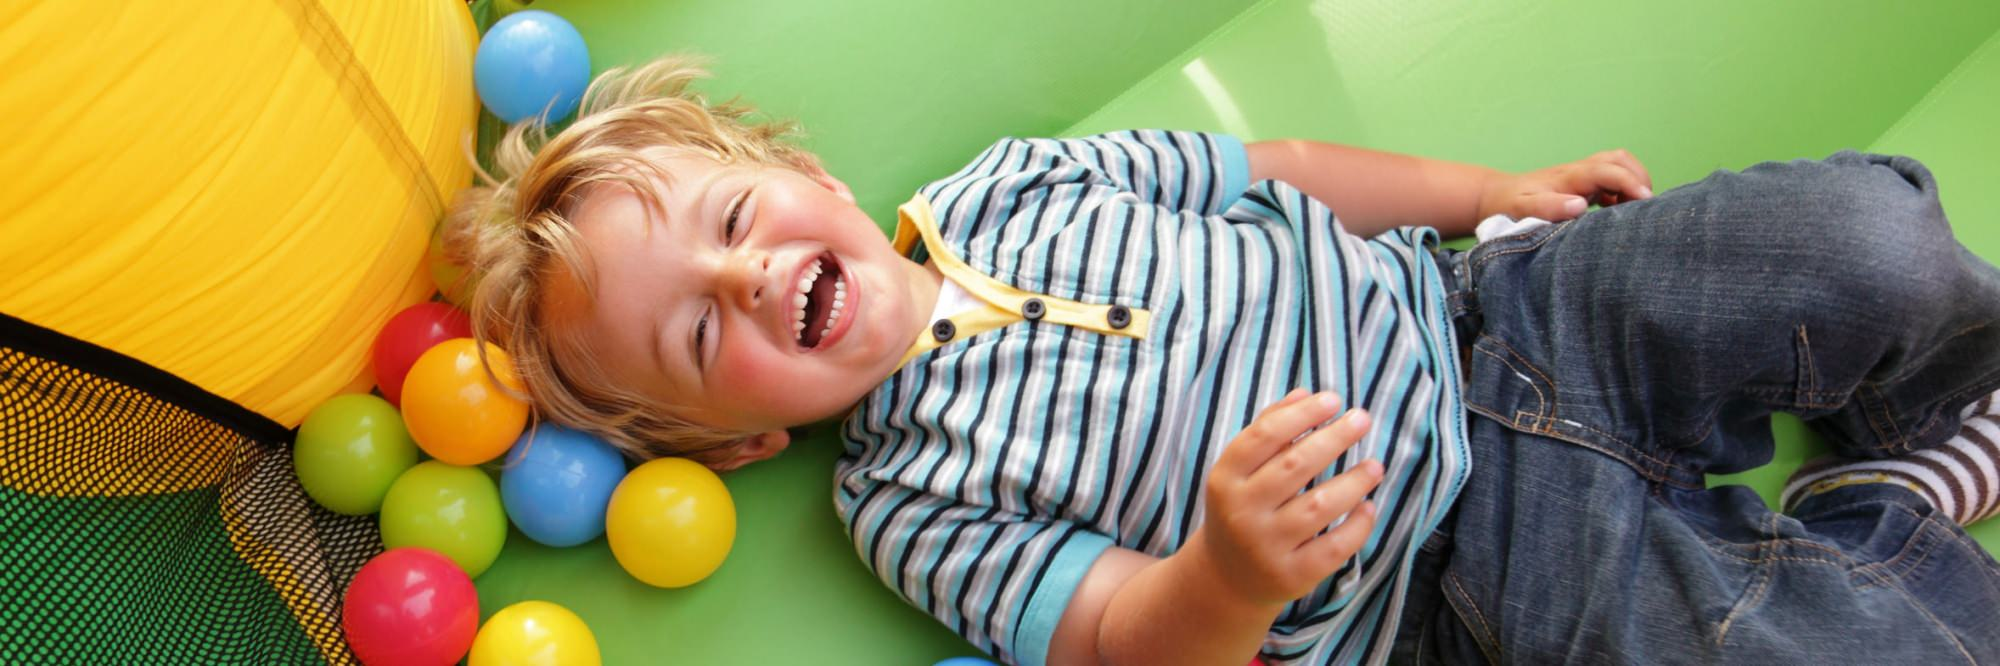 Adopted boy laughing on bouncy castle